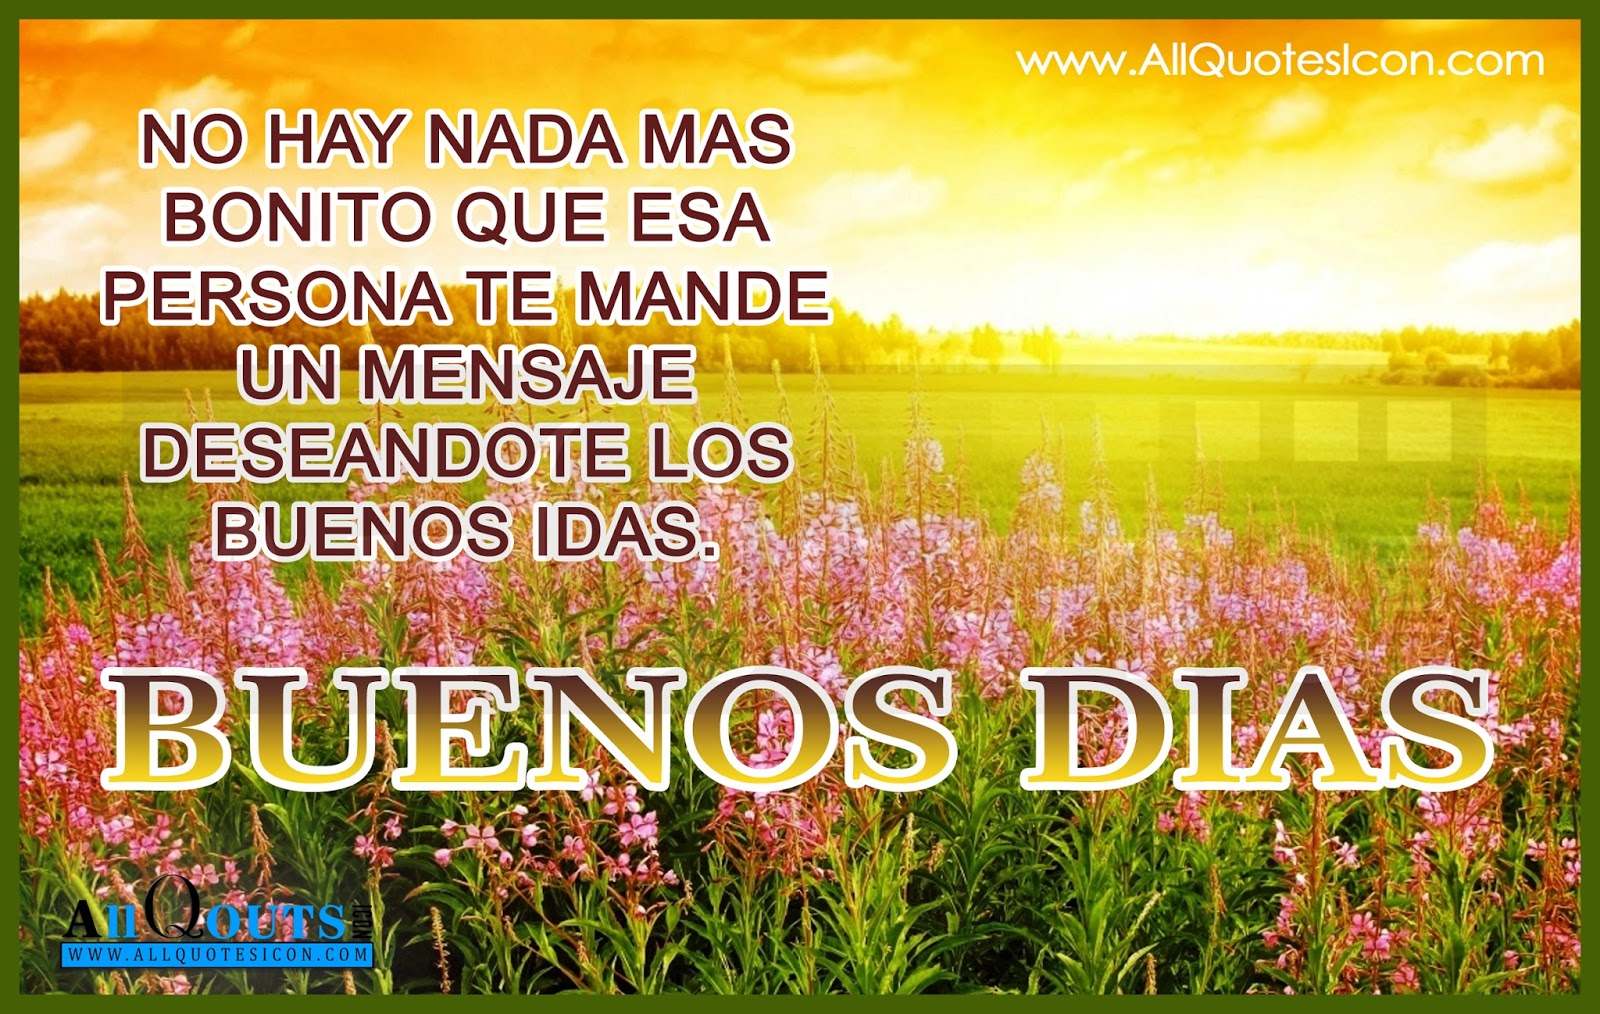 Cute Good Morning Quotes In Spanish : Good morning quotes in spanish allquotesicon